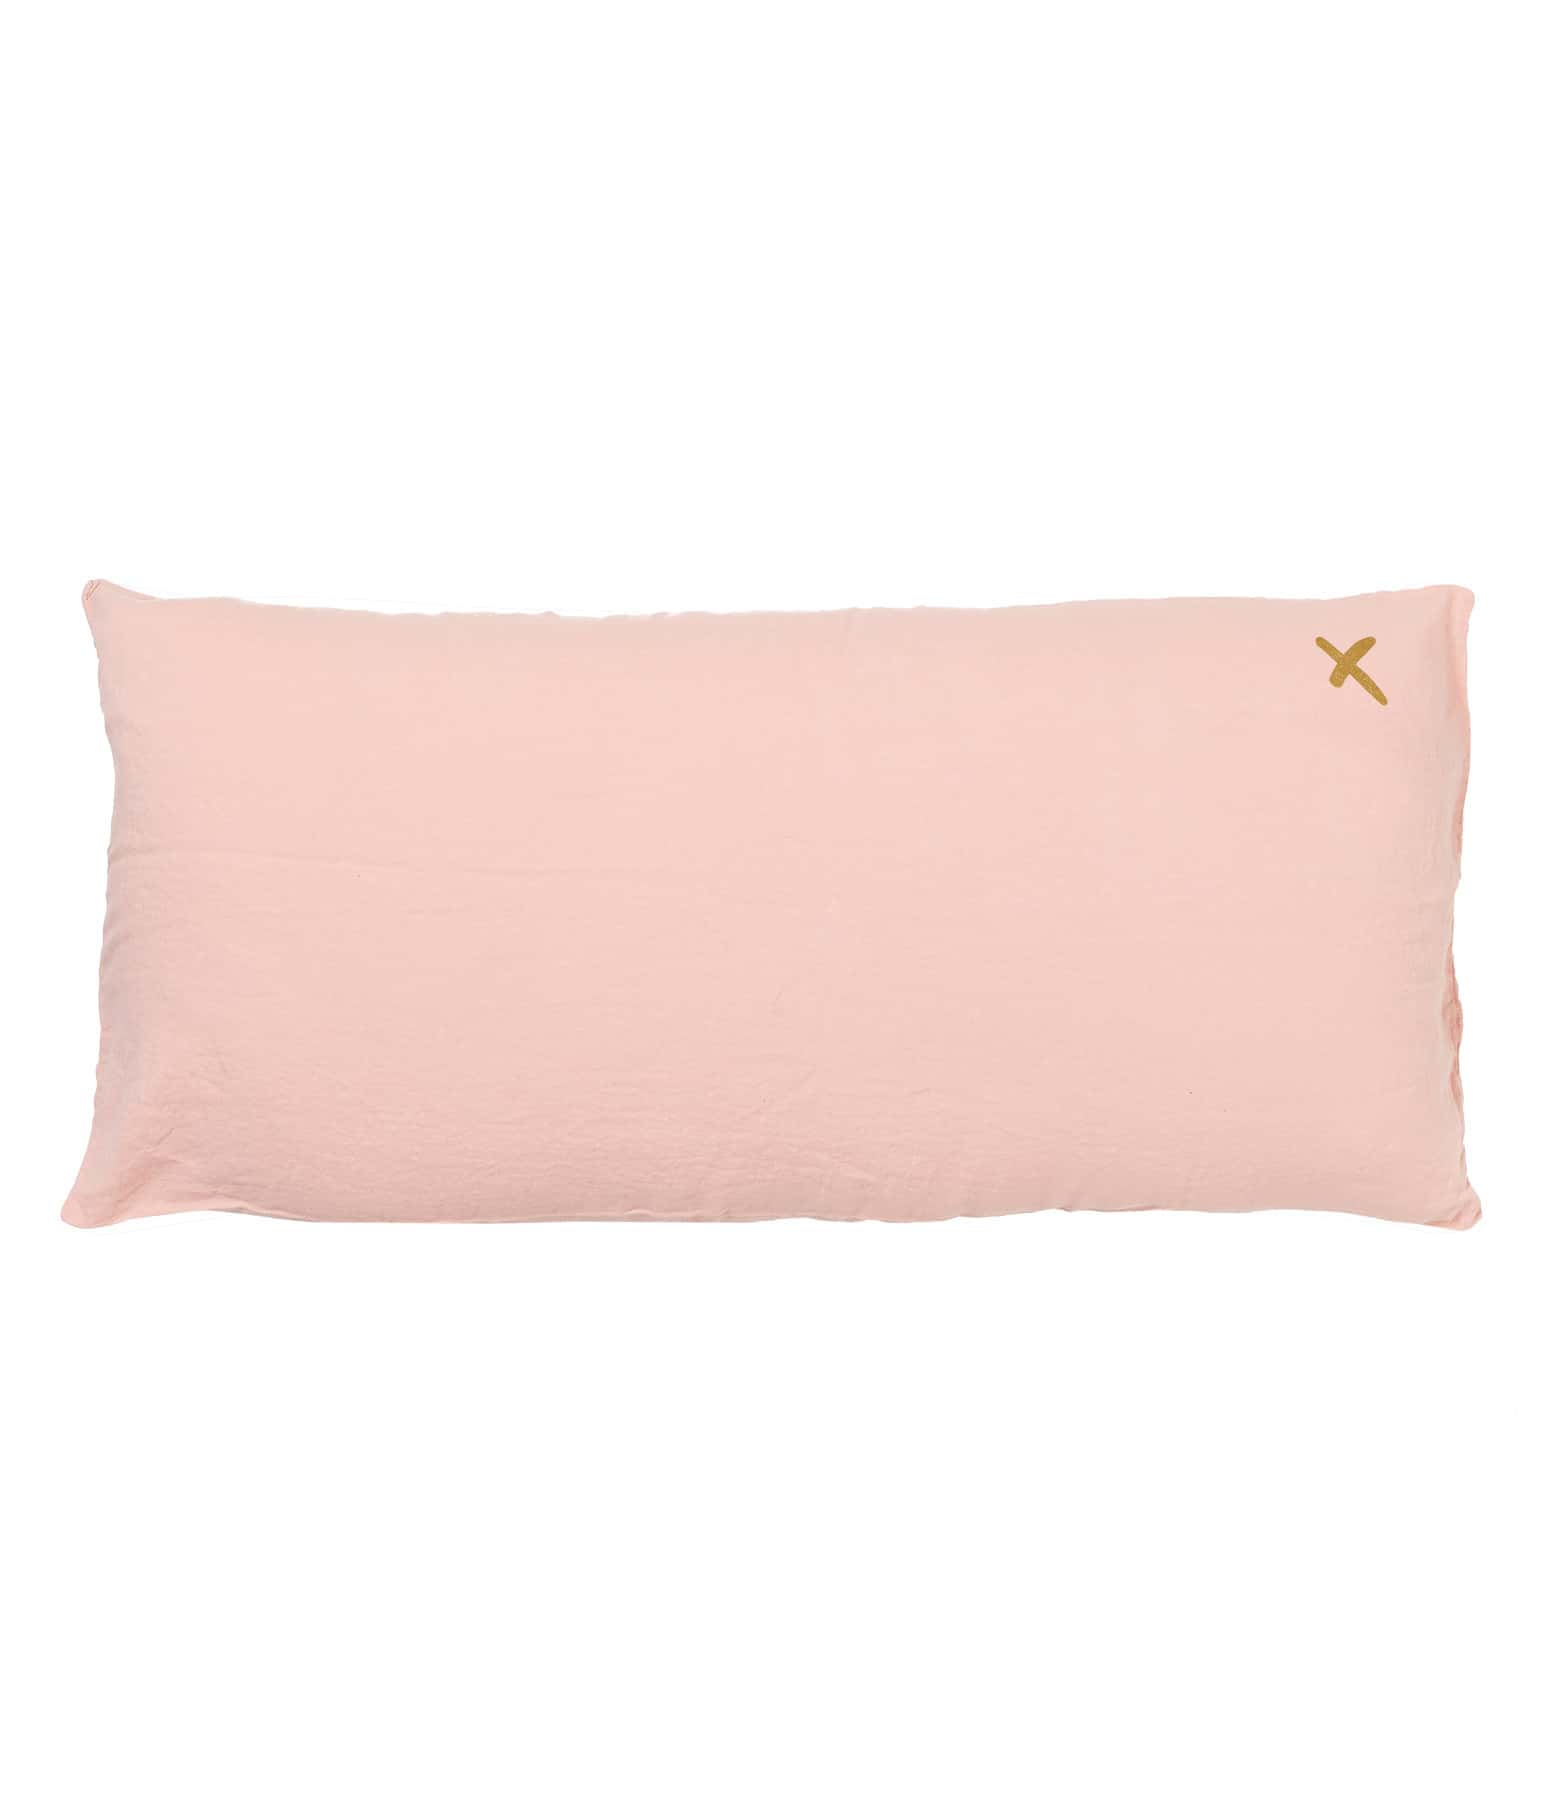 BED AND PHILOSOPHY - Coussin Lovers Lin Blush Print Croix Doré